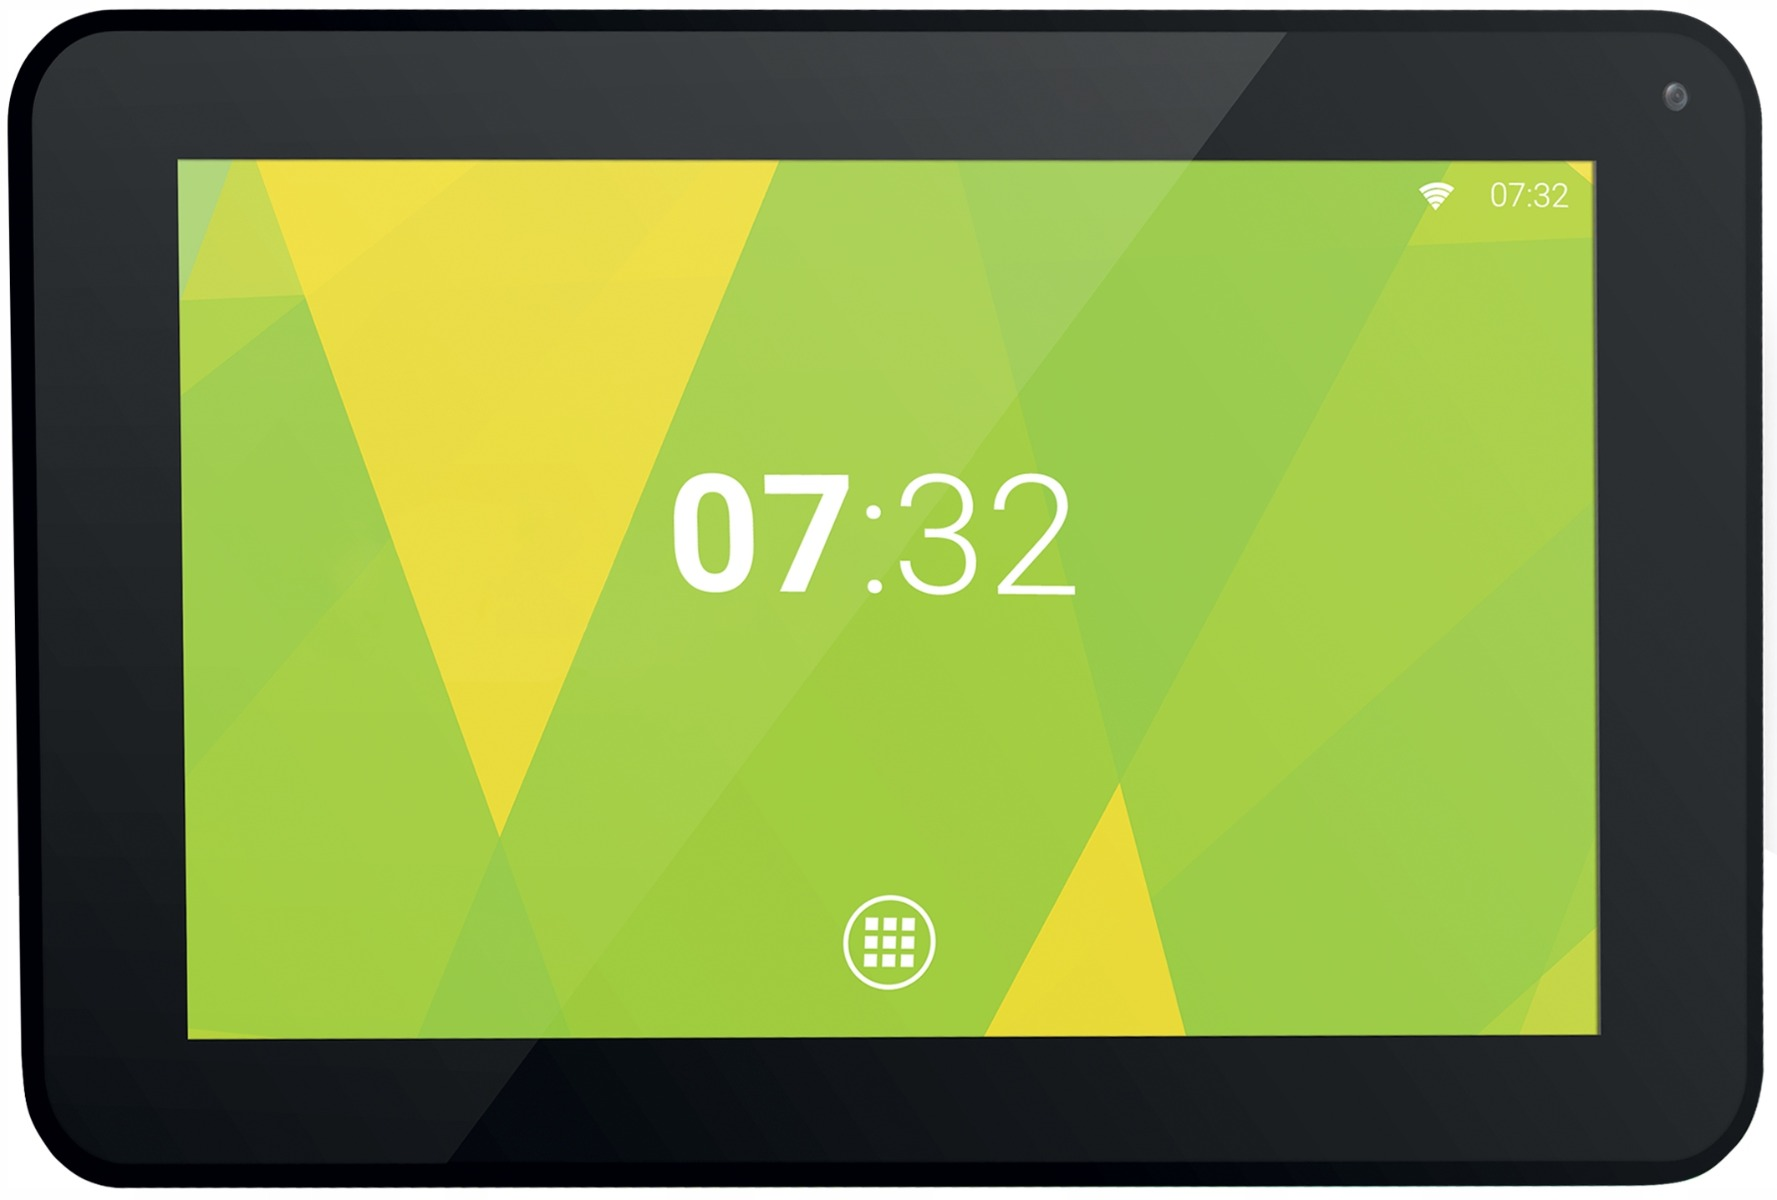 Tablet Overmax Livecore 7032 Black